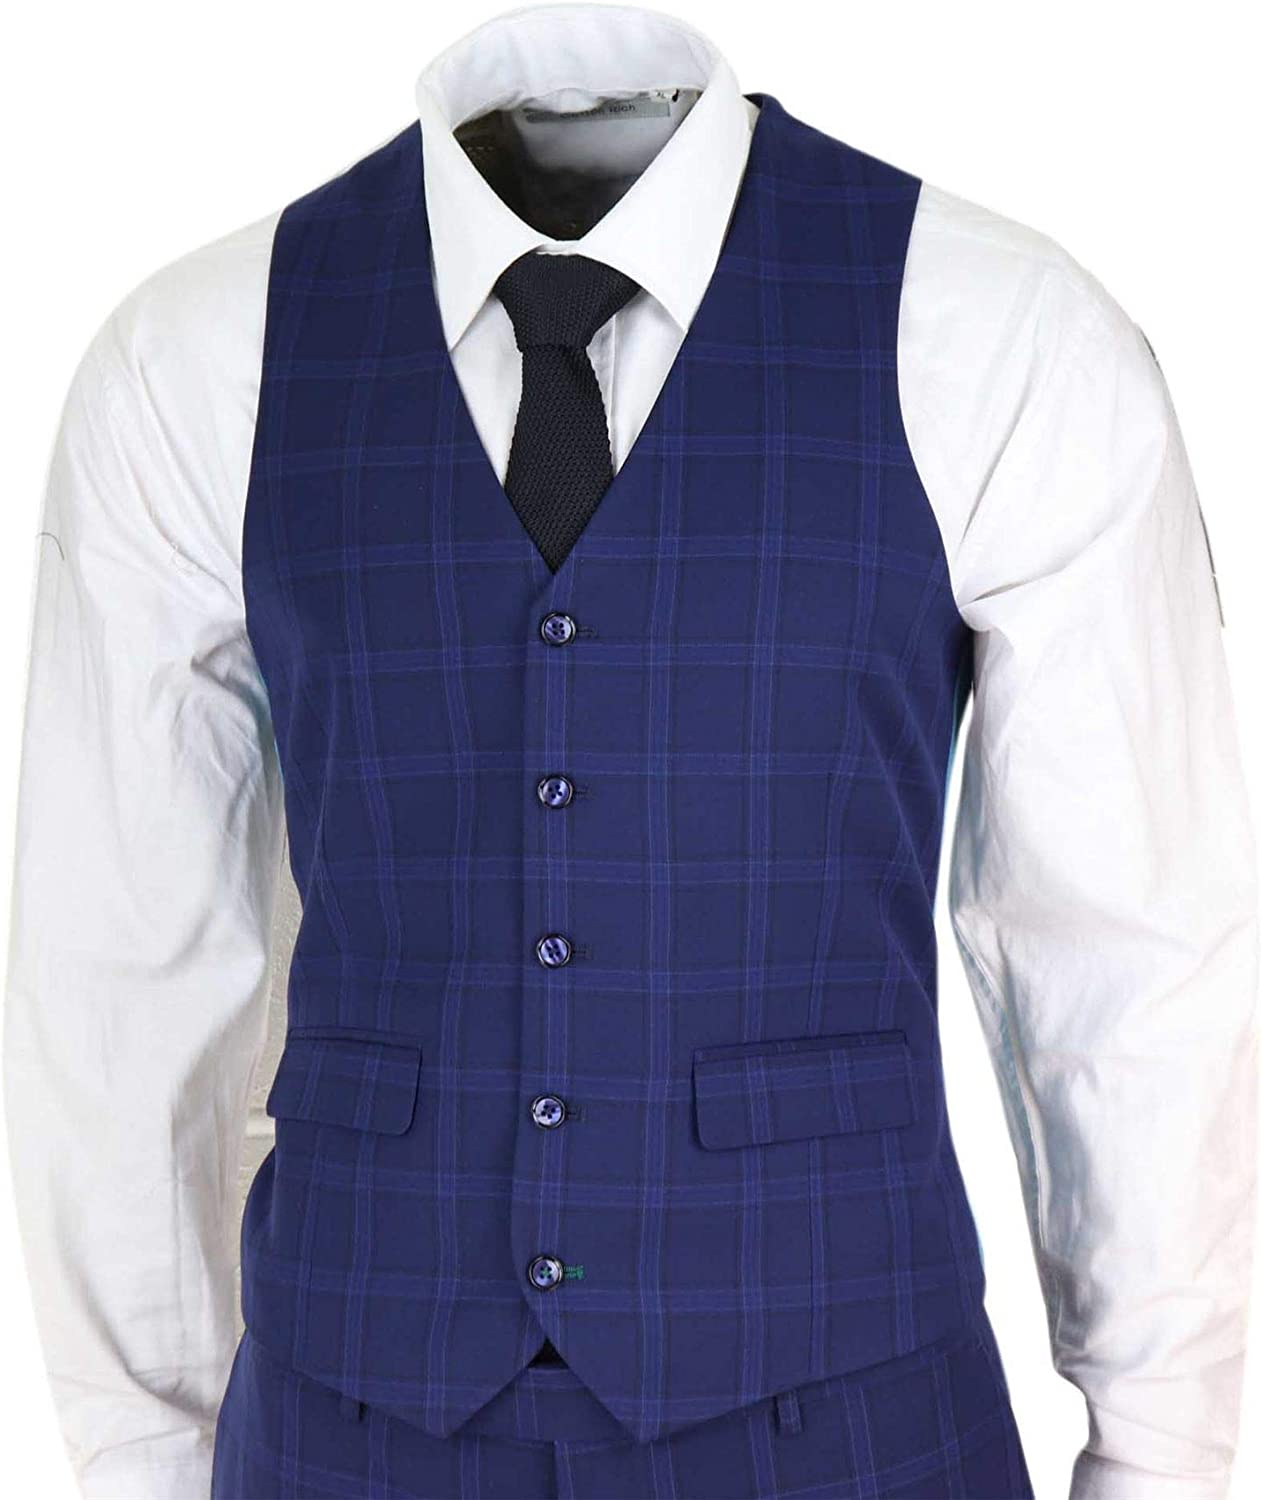 Mens 3 Piece Suit Navy Blue Prince of Wales Check Slim Fit Classic Vintage Formal